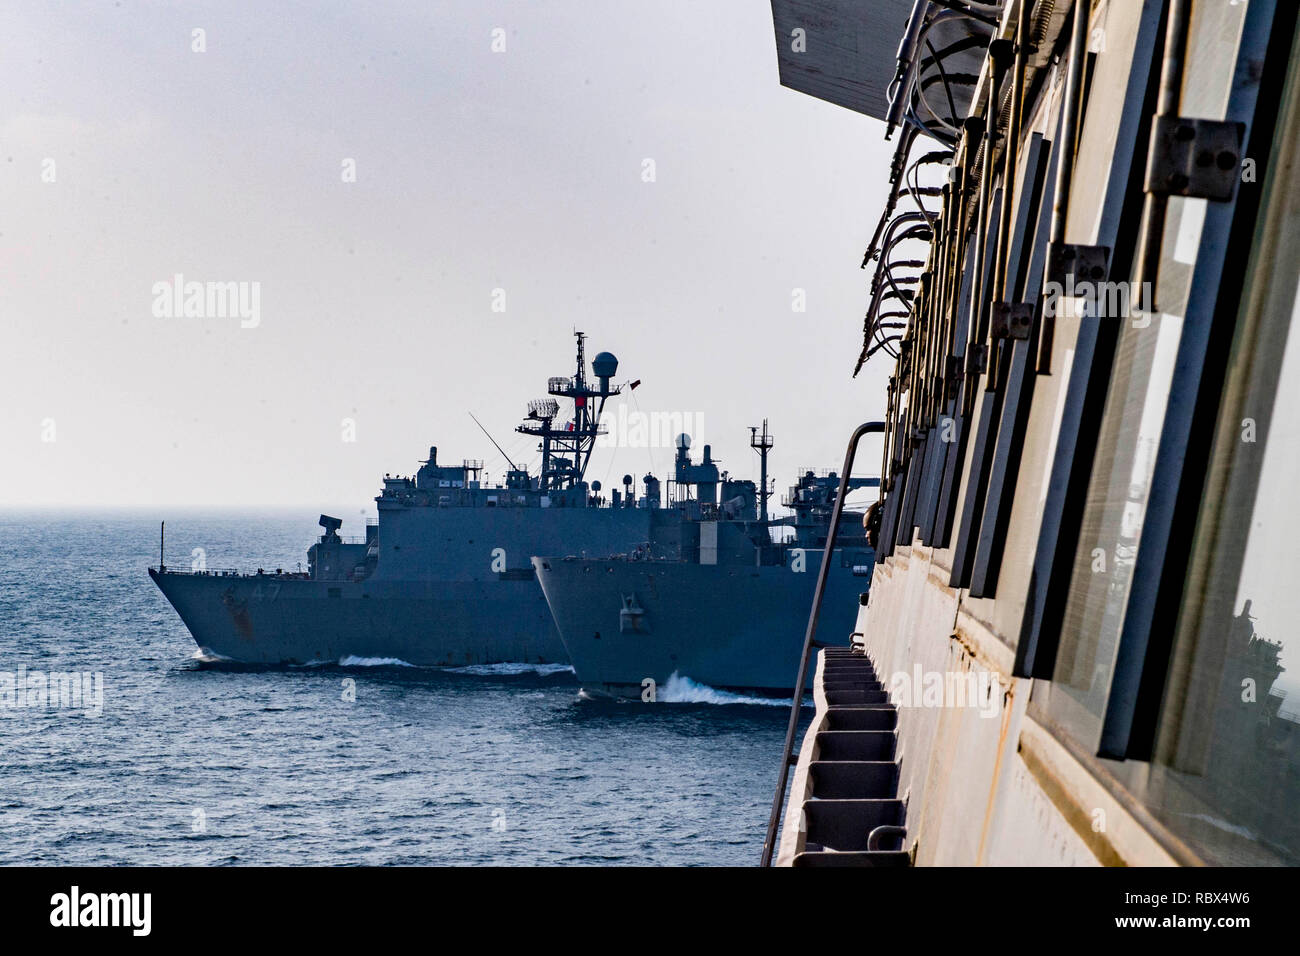 190107-N-PH222-1016 ARABIAN SEA (Jan. 7, 2018) The San Antonio-class amphibious transport dock ship USS Anchorage (LPD 23), right, transits the Arabian Sea, alongside the dry cargo and ammunition ship USNS Alan Shepard (T-AKE-3), center, and the Whidbey Island-class amphibious dock landing ship USS Rushmore (LSD 47), during a vertical replenishment while on a deployment of the Essex Amphibious Ready Group (ARG) and 13th Marine Expeditionary Unit (MEU). The Essex ARG/13th MEU is flexible and persistent Navy-Marine Corps team deployed to the U.S. 5th Fleet area of operations in support of naval  - Stock Image